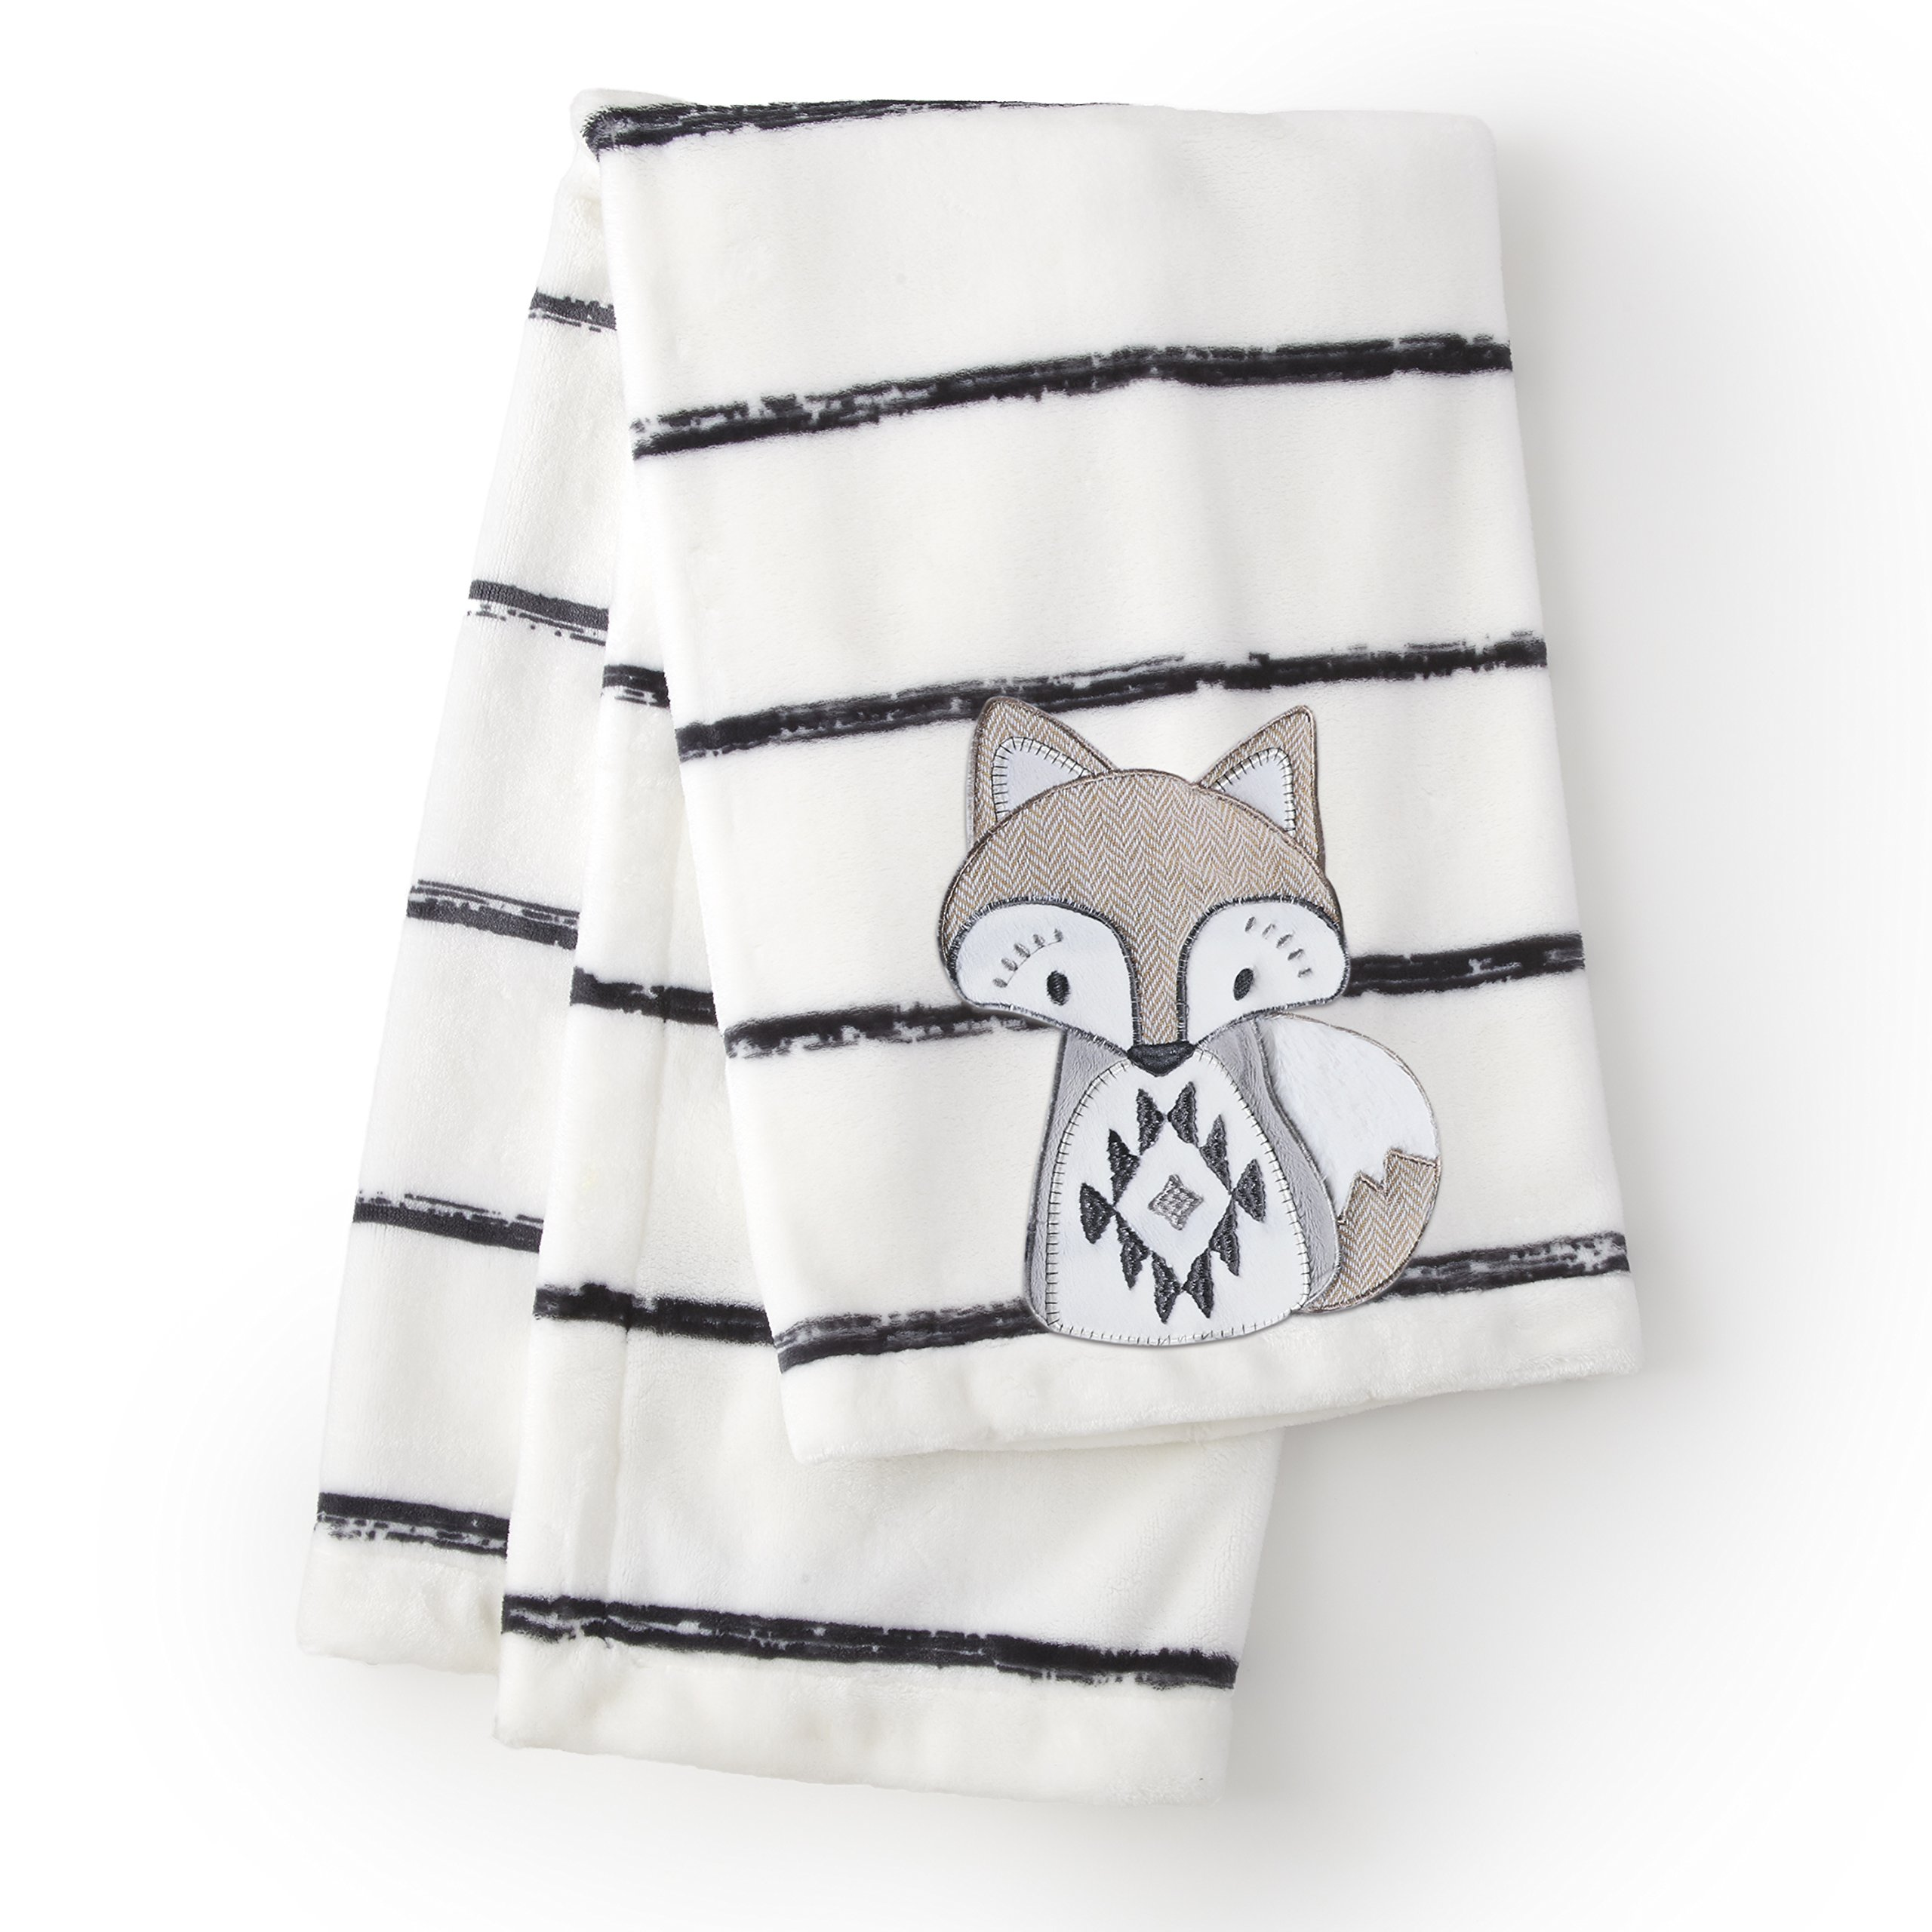 Levtex Baby - Bailey Plush Blanket - Appliqued and Embroidered Fox on Striped Plush - Charcoal, Taupe, White - Nursery Accessories - Blanket Size: 30 x 40 in.